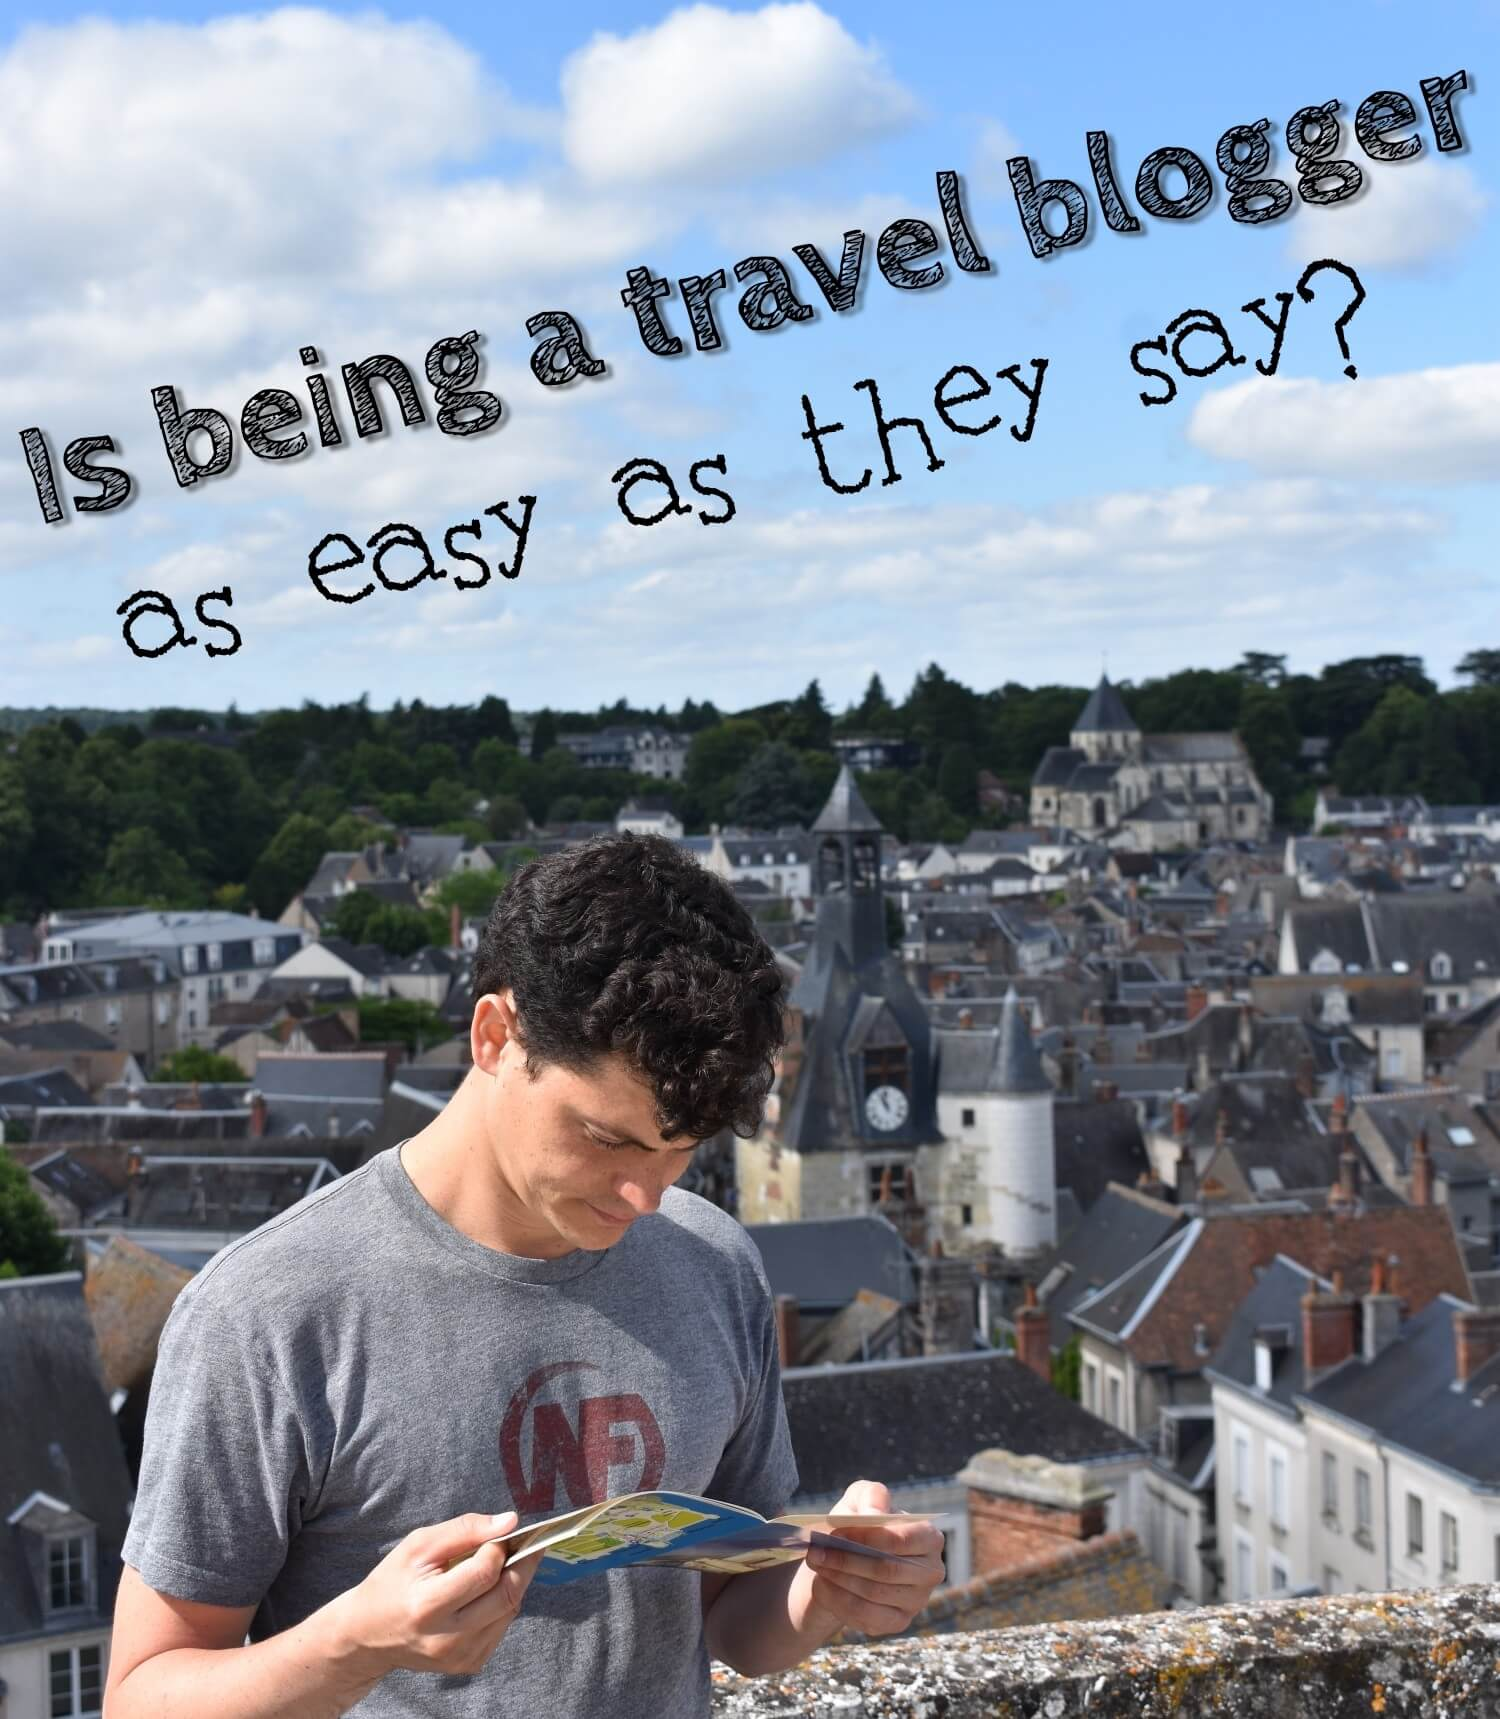 Is being a travel blogger as easy as they say? We find out